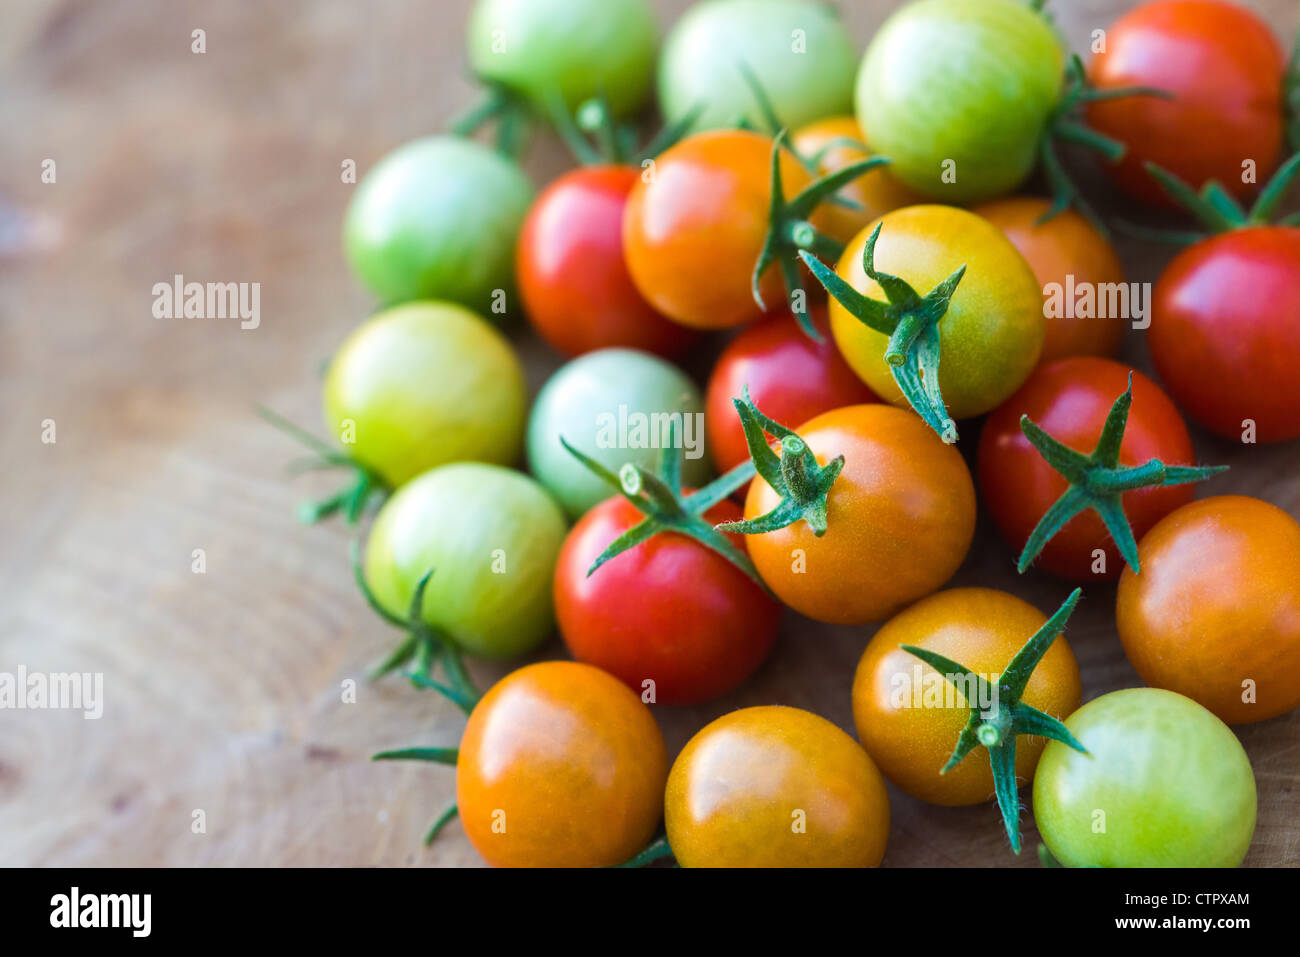 This is an image of Cherry Tomatoes - Stock Image